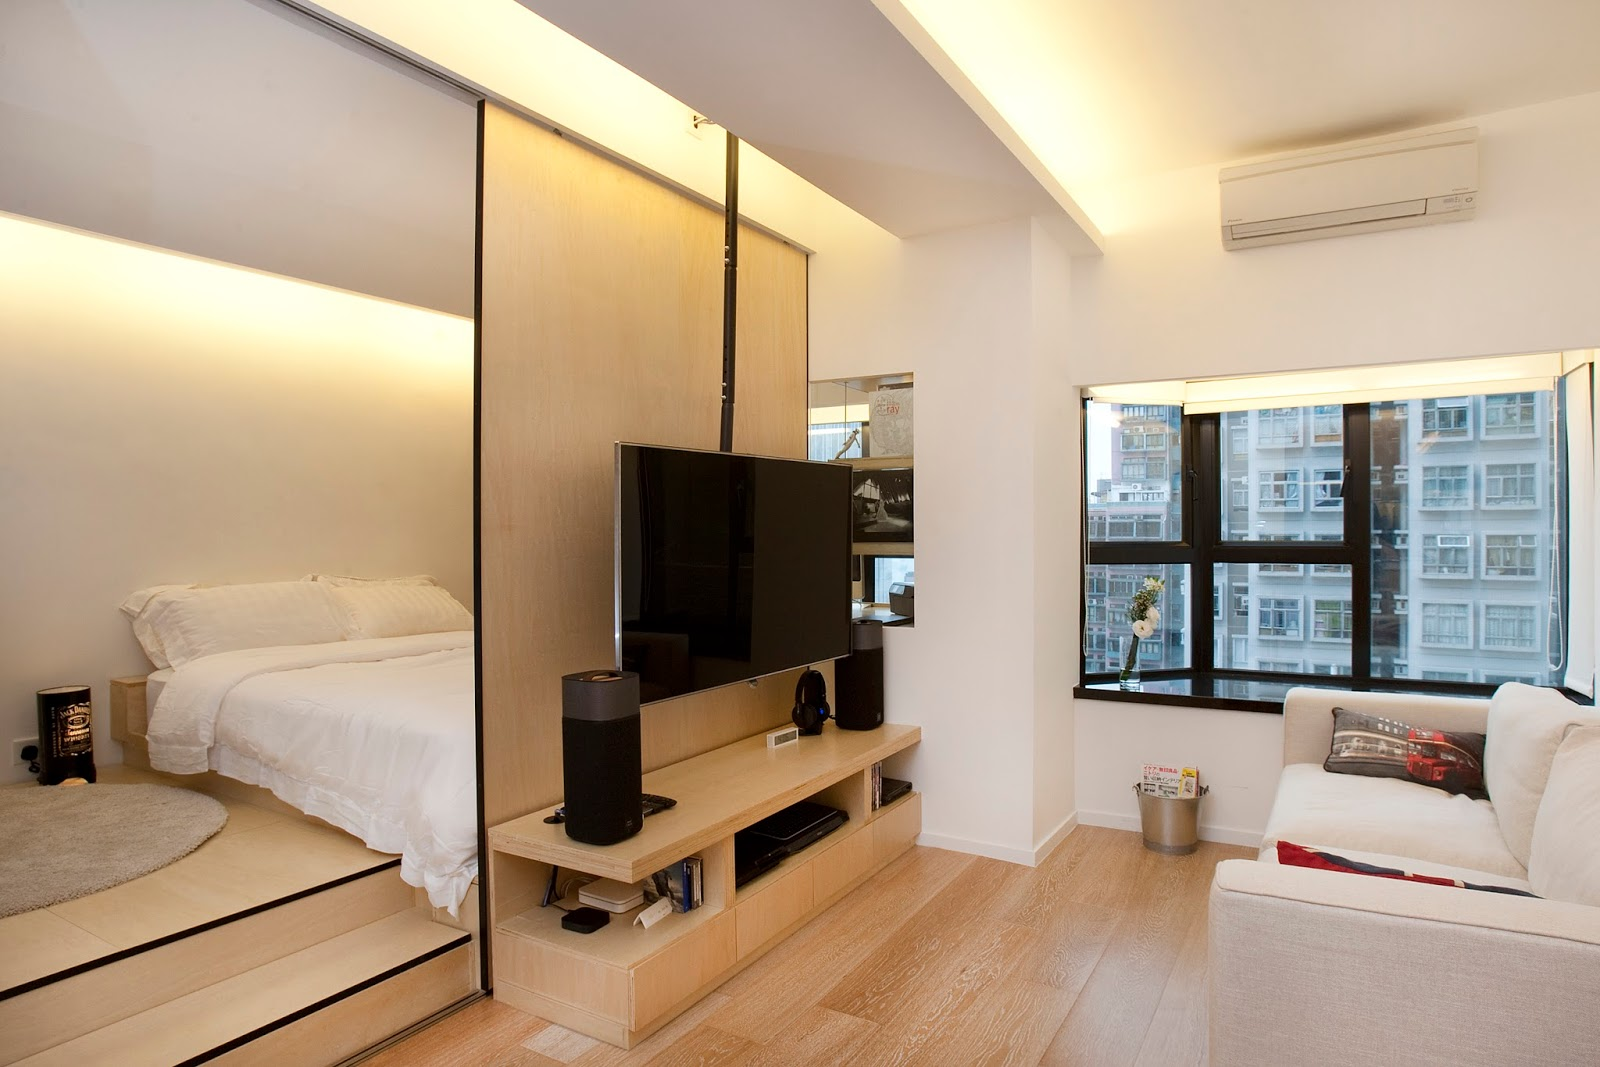 Hong Kong Interior Design Tips Ideas Clifton Leung 6 Ways To Make Small Spaces Look Bigger